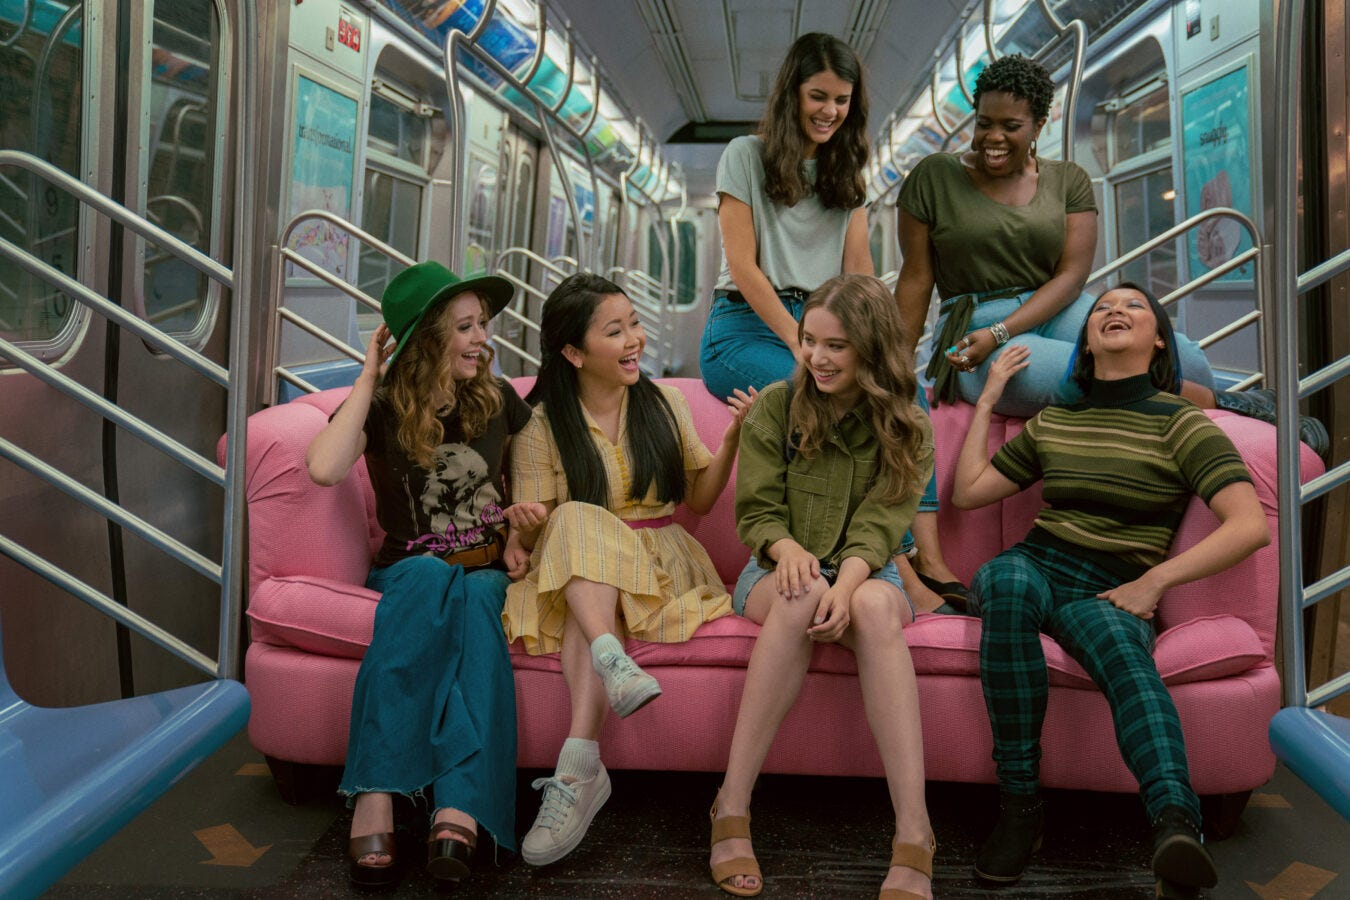 Still from To All the Boys: Always and Forever of the main character and her friends sitting on a pink couch on the subway. Two of them are sitting on the back and four are sitting on the couch.